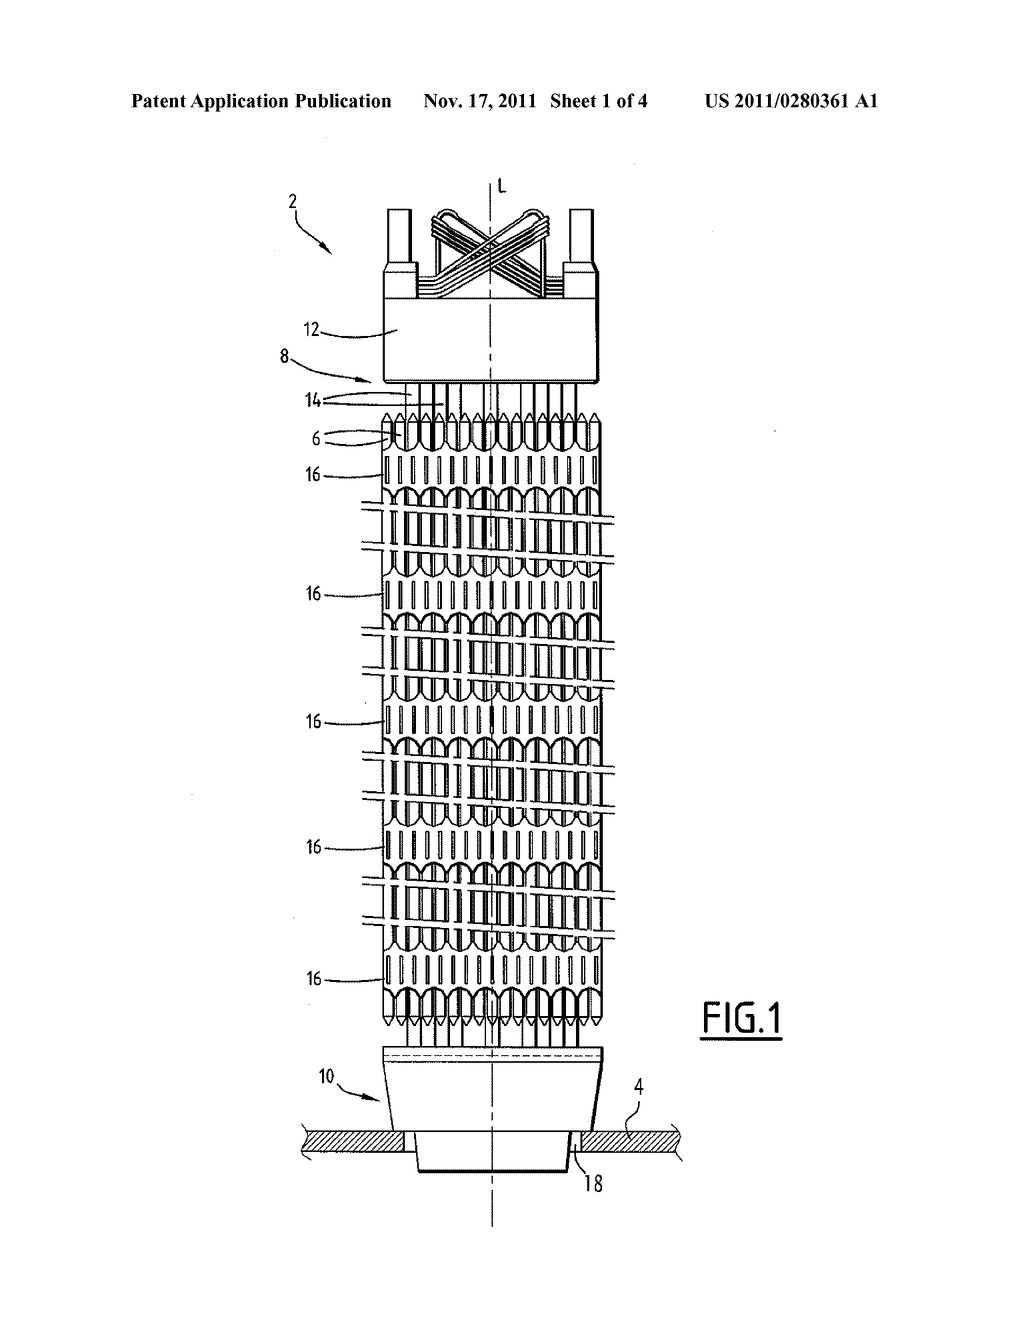 Pressurized Water Reactor Fuel Assemblies Heavy Design Power Plant Diagram Boiling Lower Nozzle For Nuclear Assembly Condenser